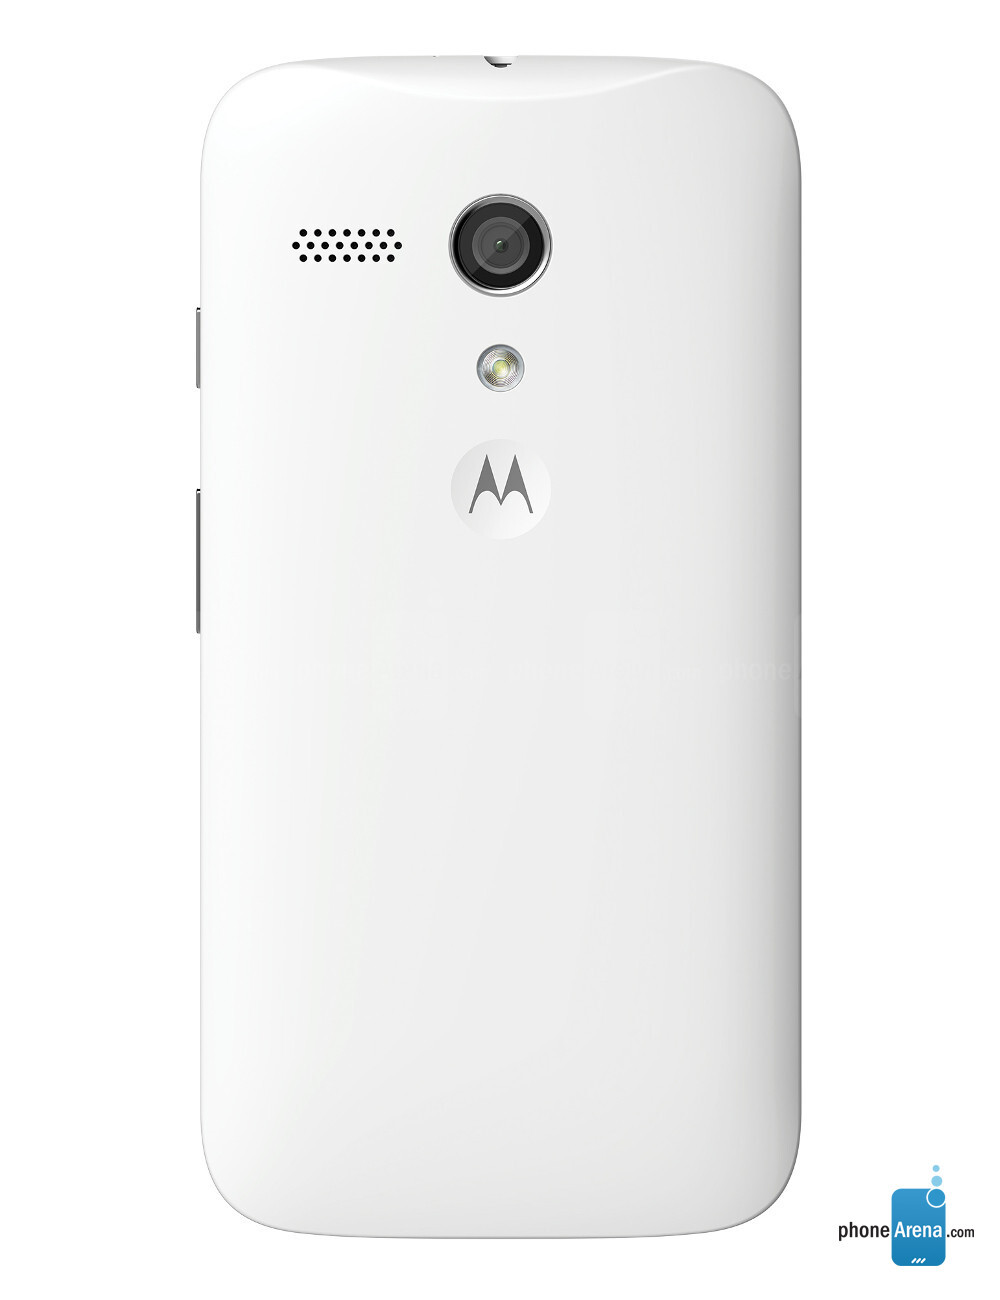 Image Result For Moto G Smartphone Specifications